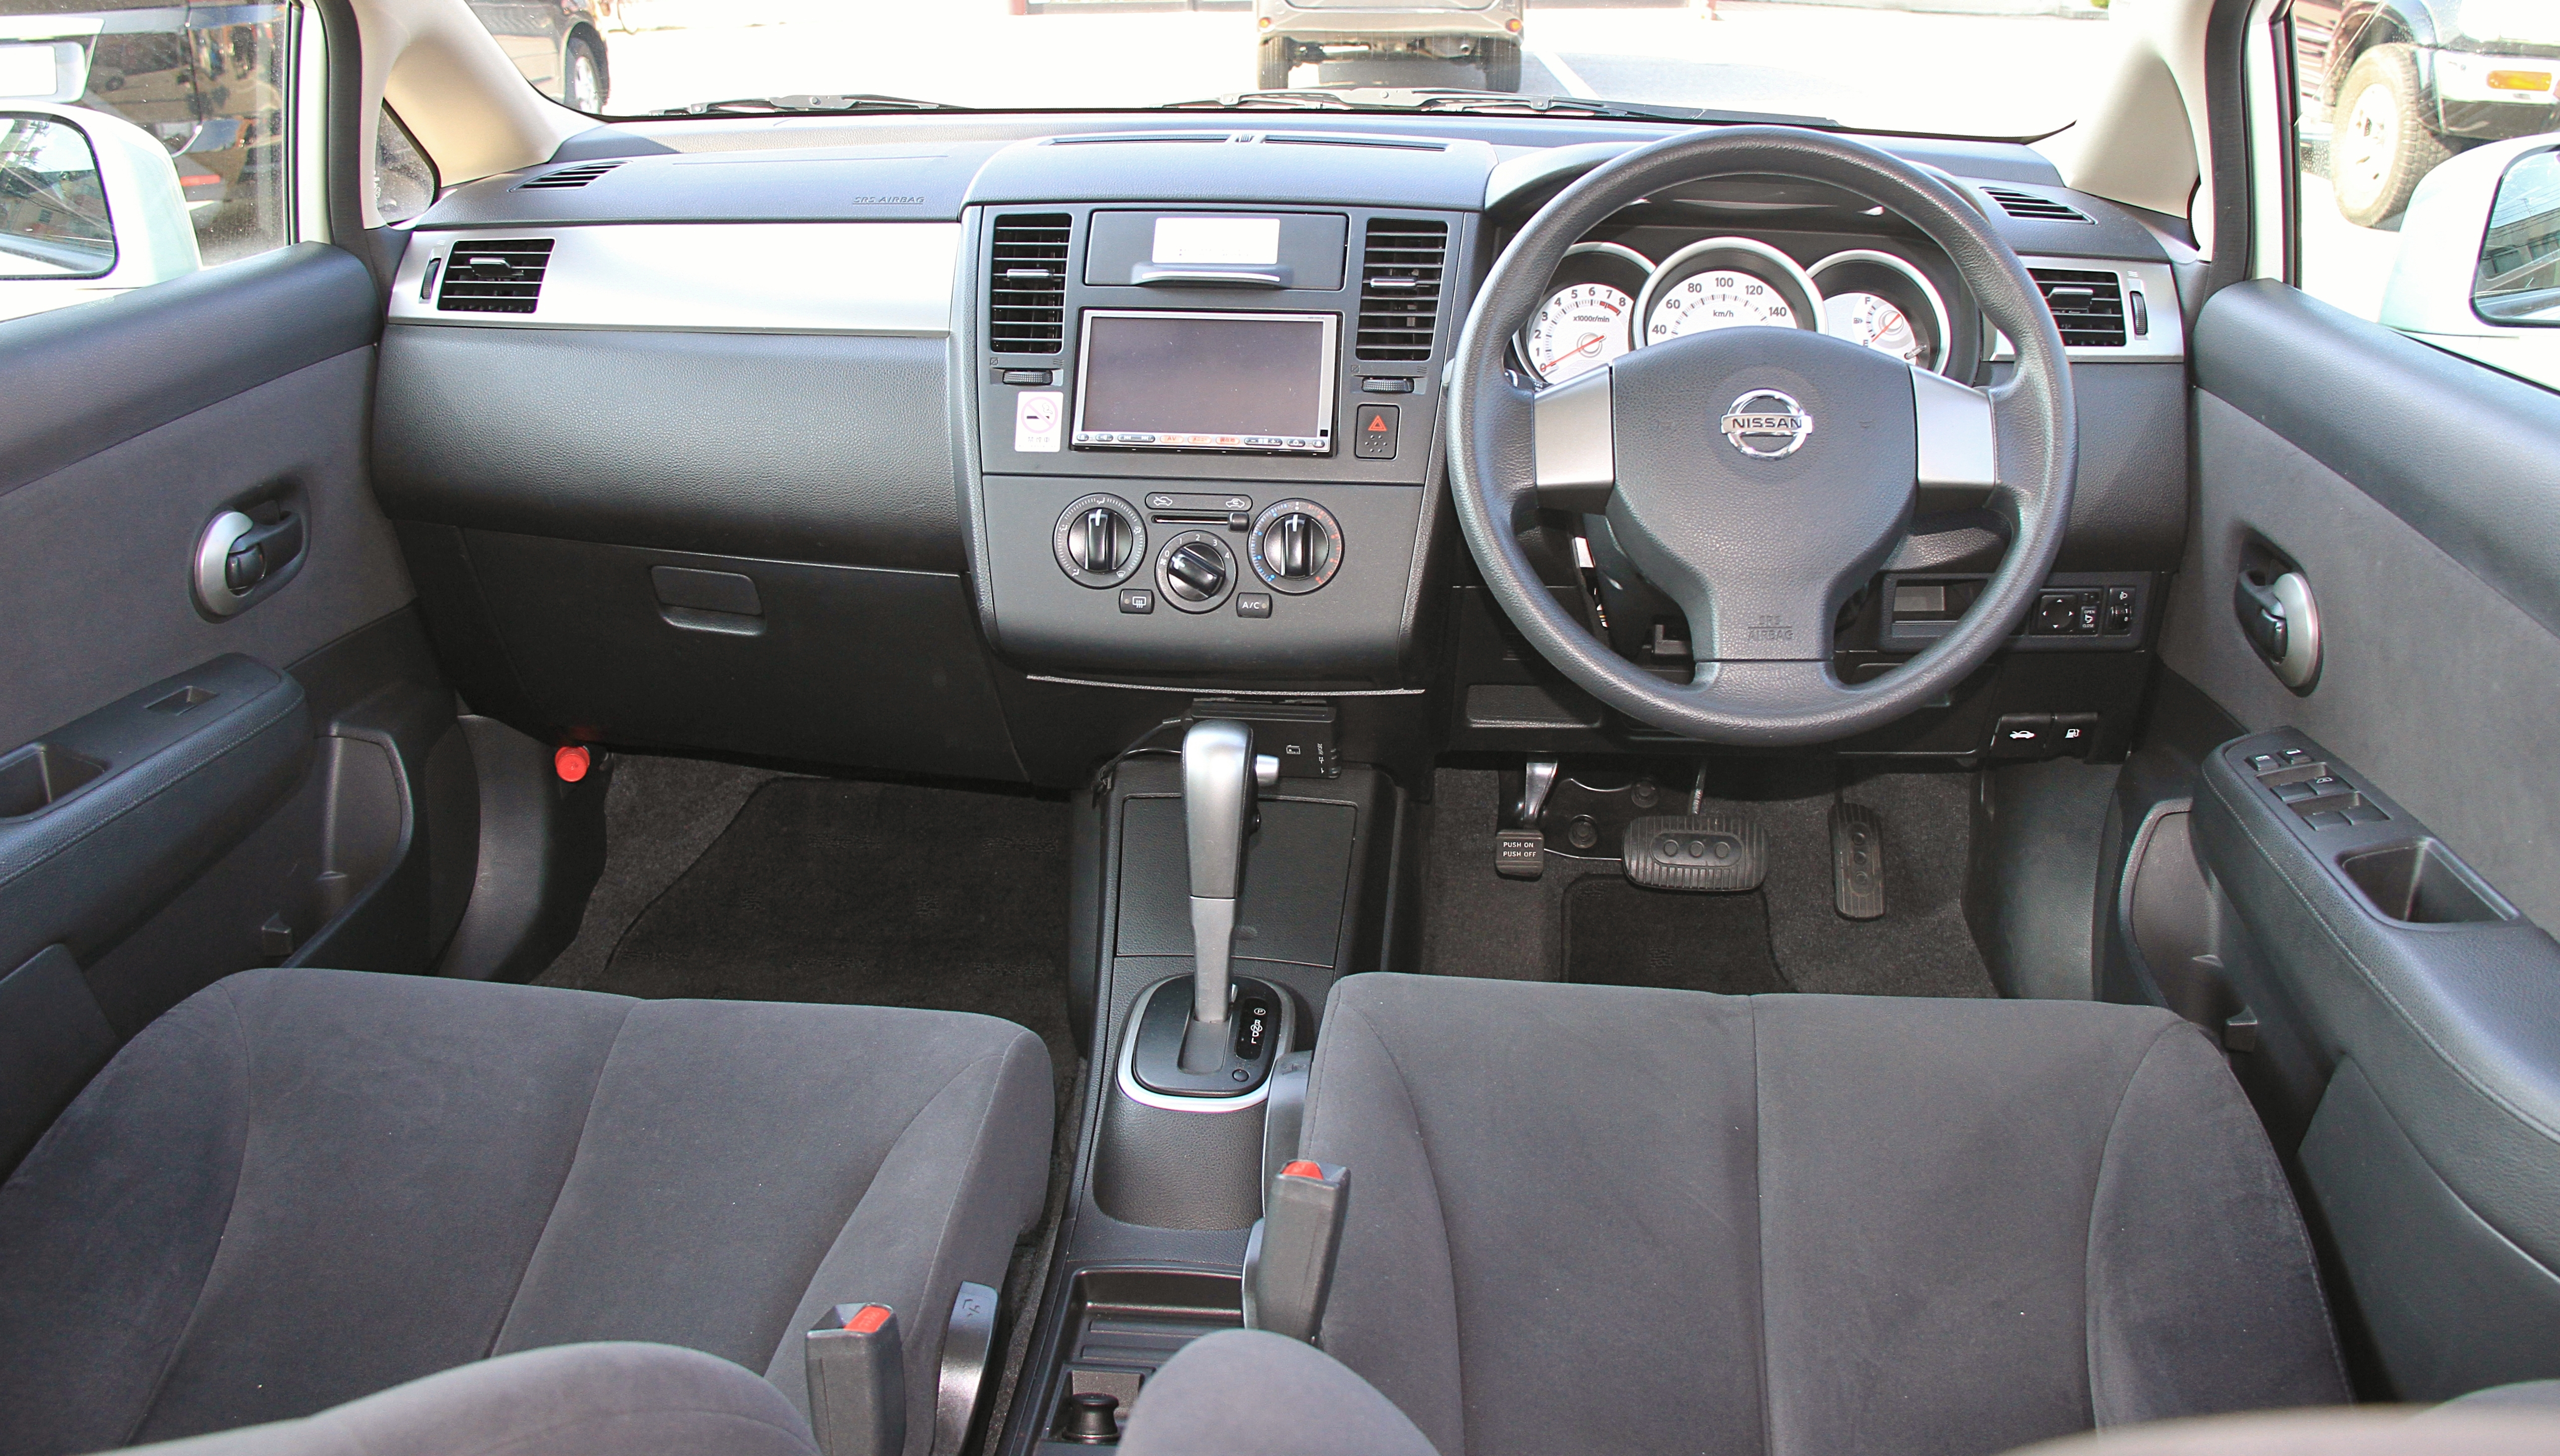 File Nissan Tiida Interior Jpg Wikimedia Commons